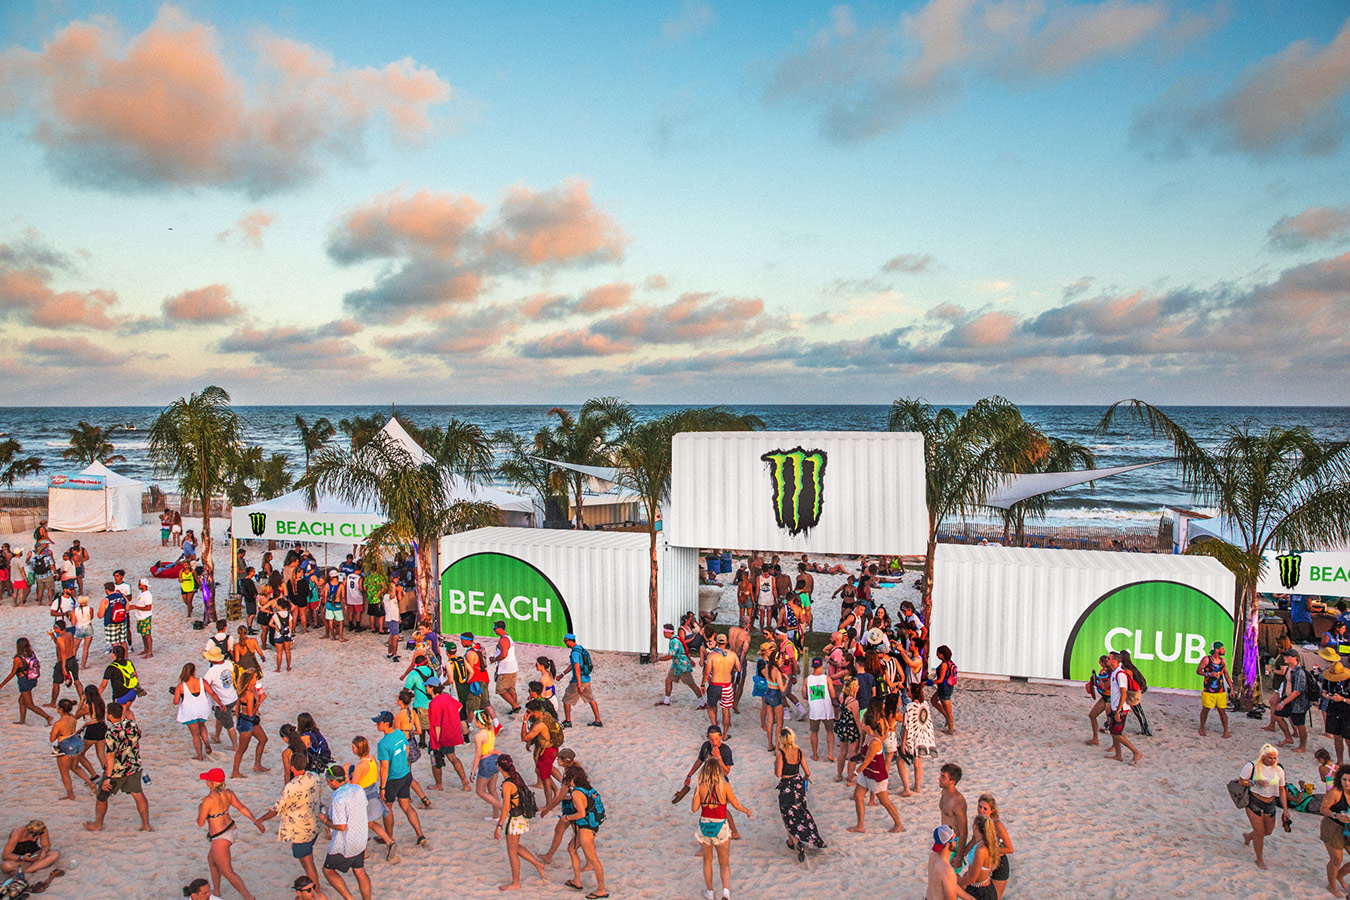 SWIM AND DANCE ALL DAY AT MONSTER BEACH CLUB